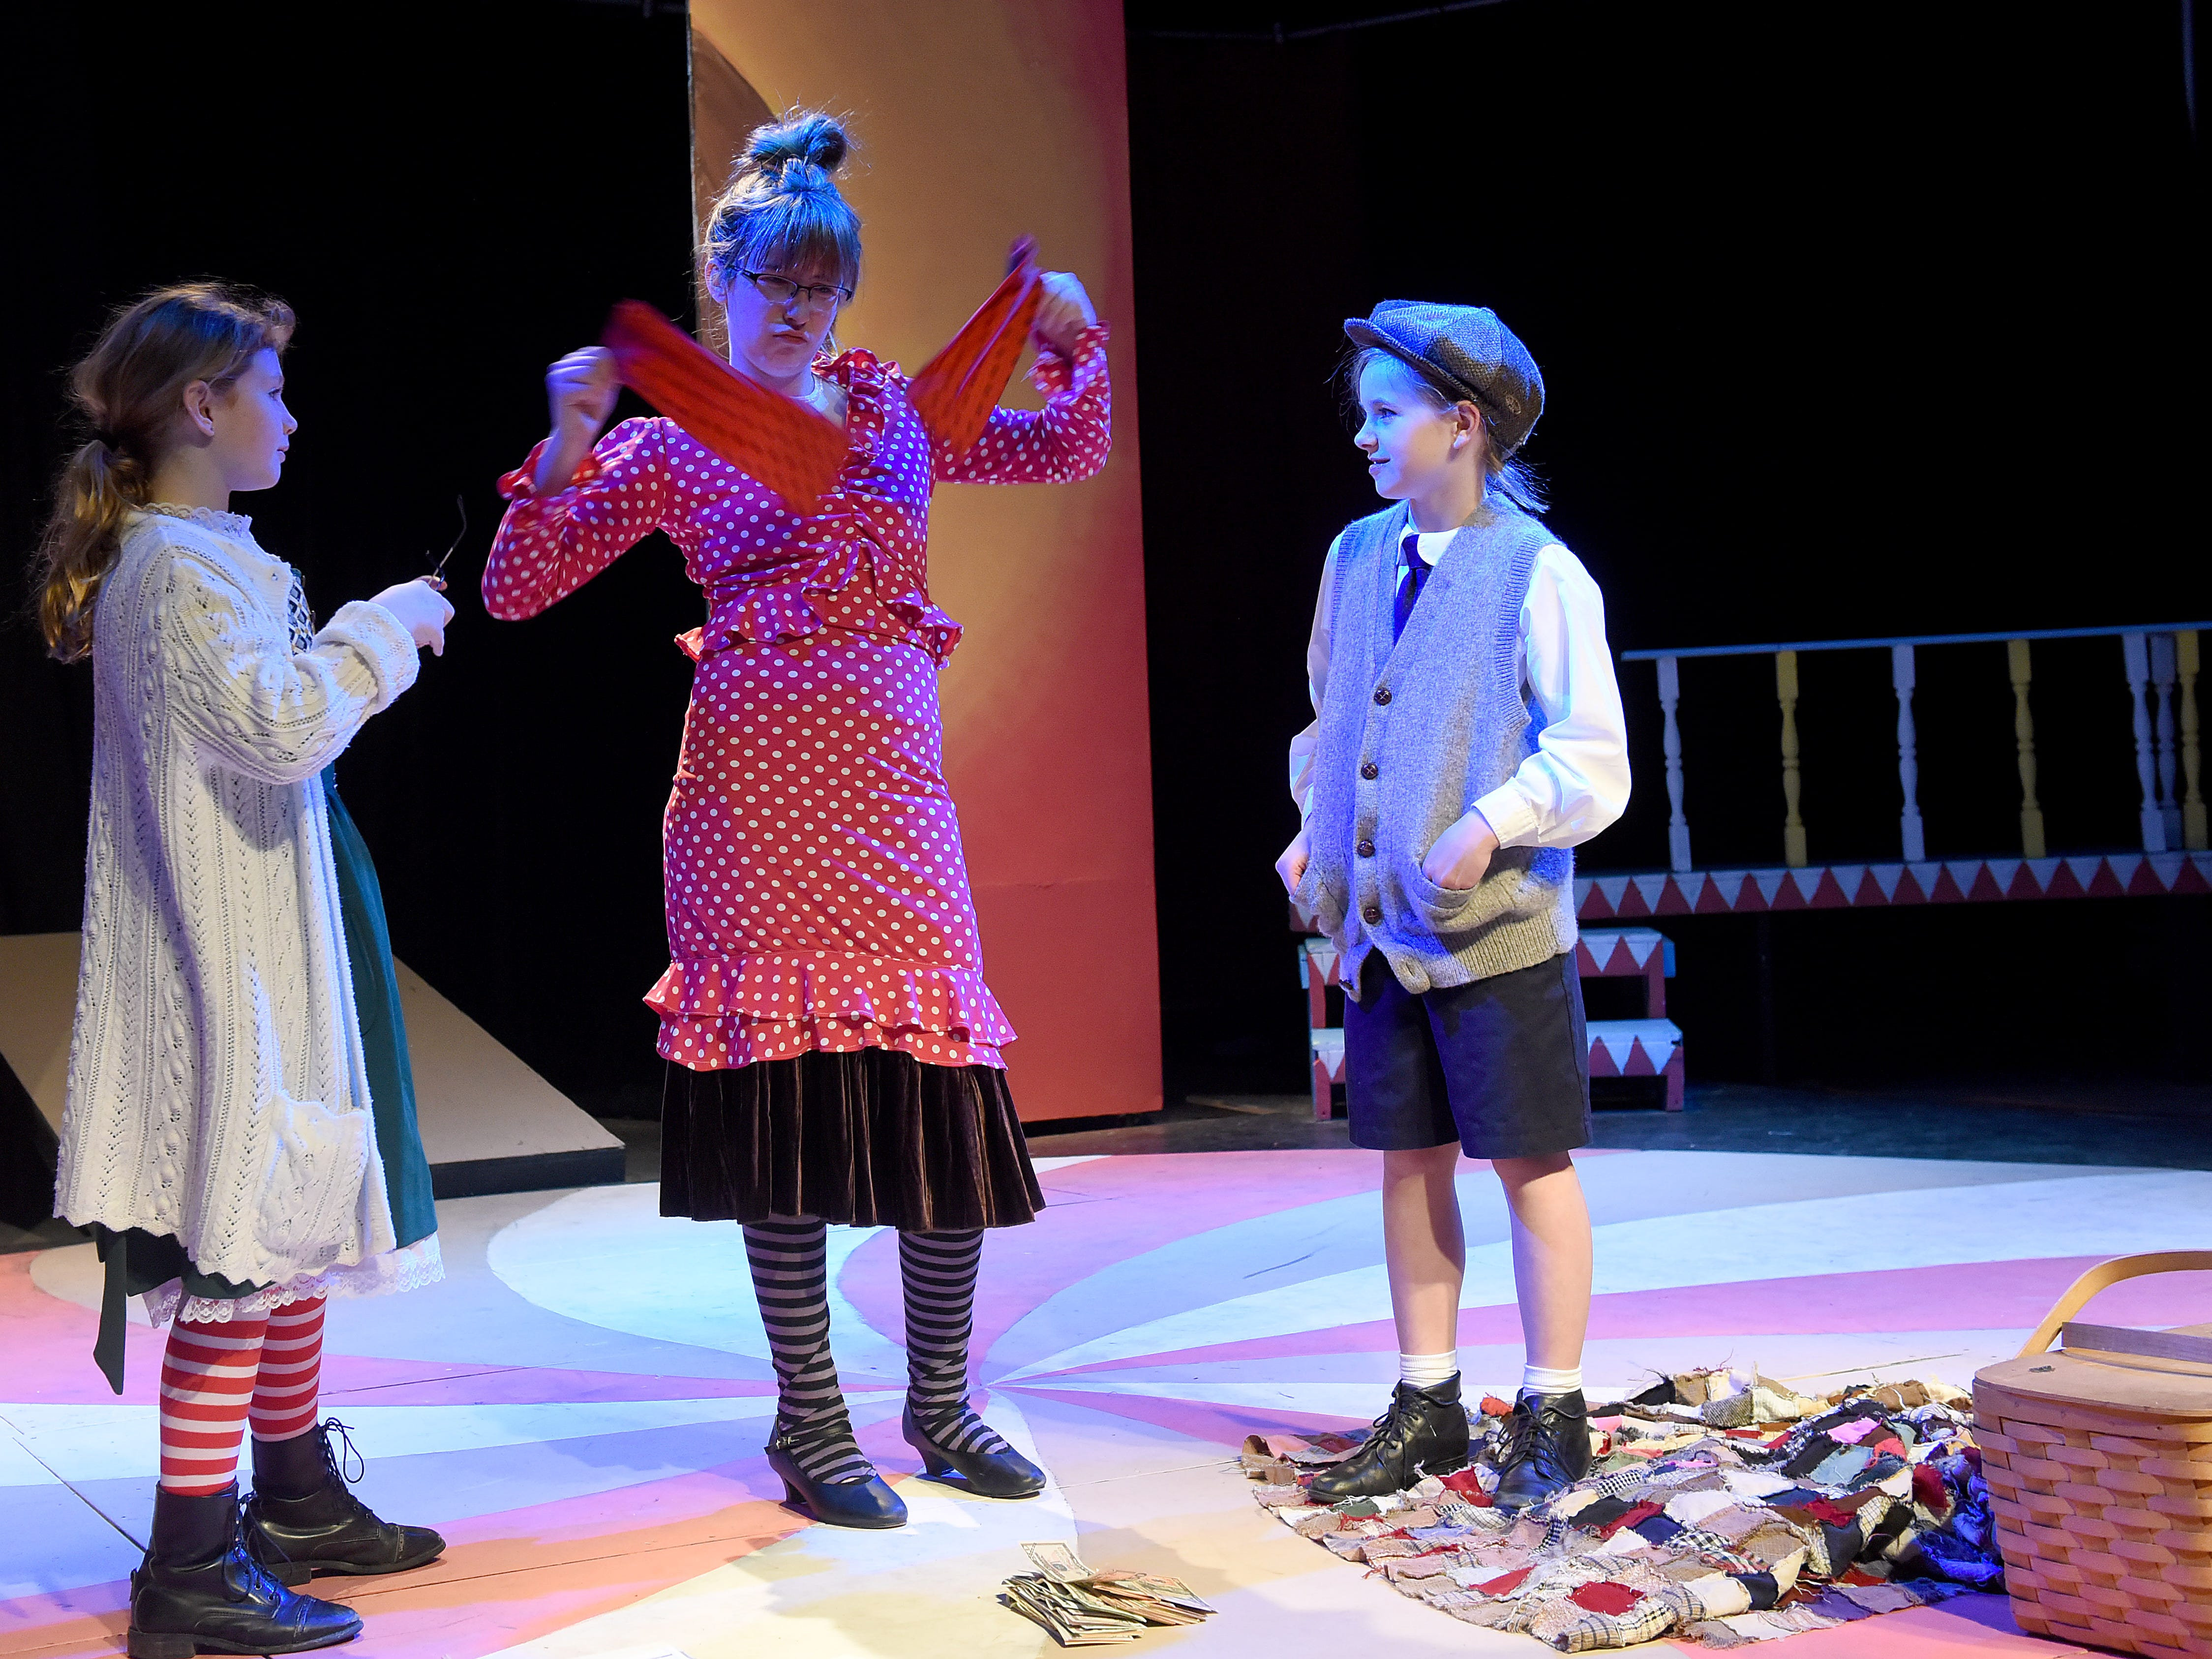 Portraying cruel aunts, Jennalyn Shafer and Avamarie Hedrick harass their nephew James, portrayed by Isabelle Tracy, during a rehearsal for Weathervane Young Artists' Repertory Theatre's production of James and the Giant Peach. The musical, based on the novel by Roald Dahl, begins on Friday, April 5.